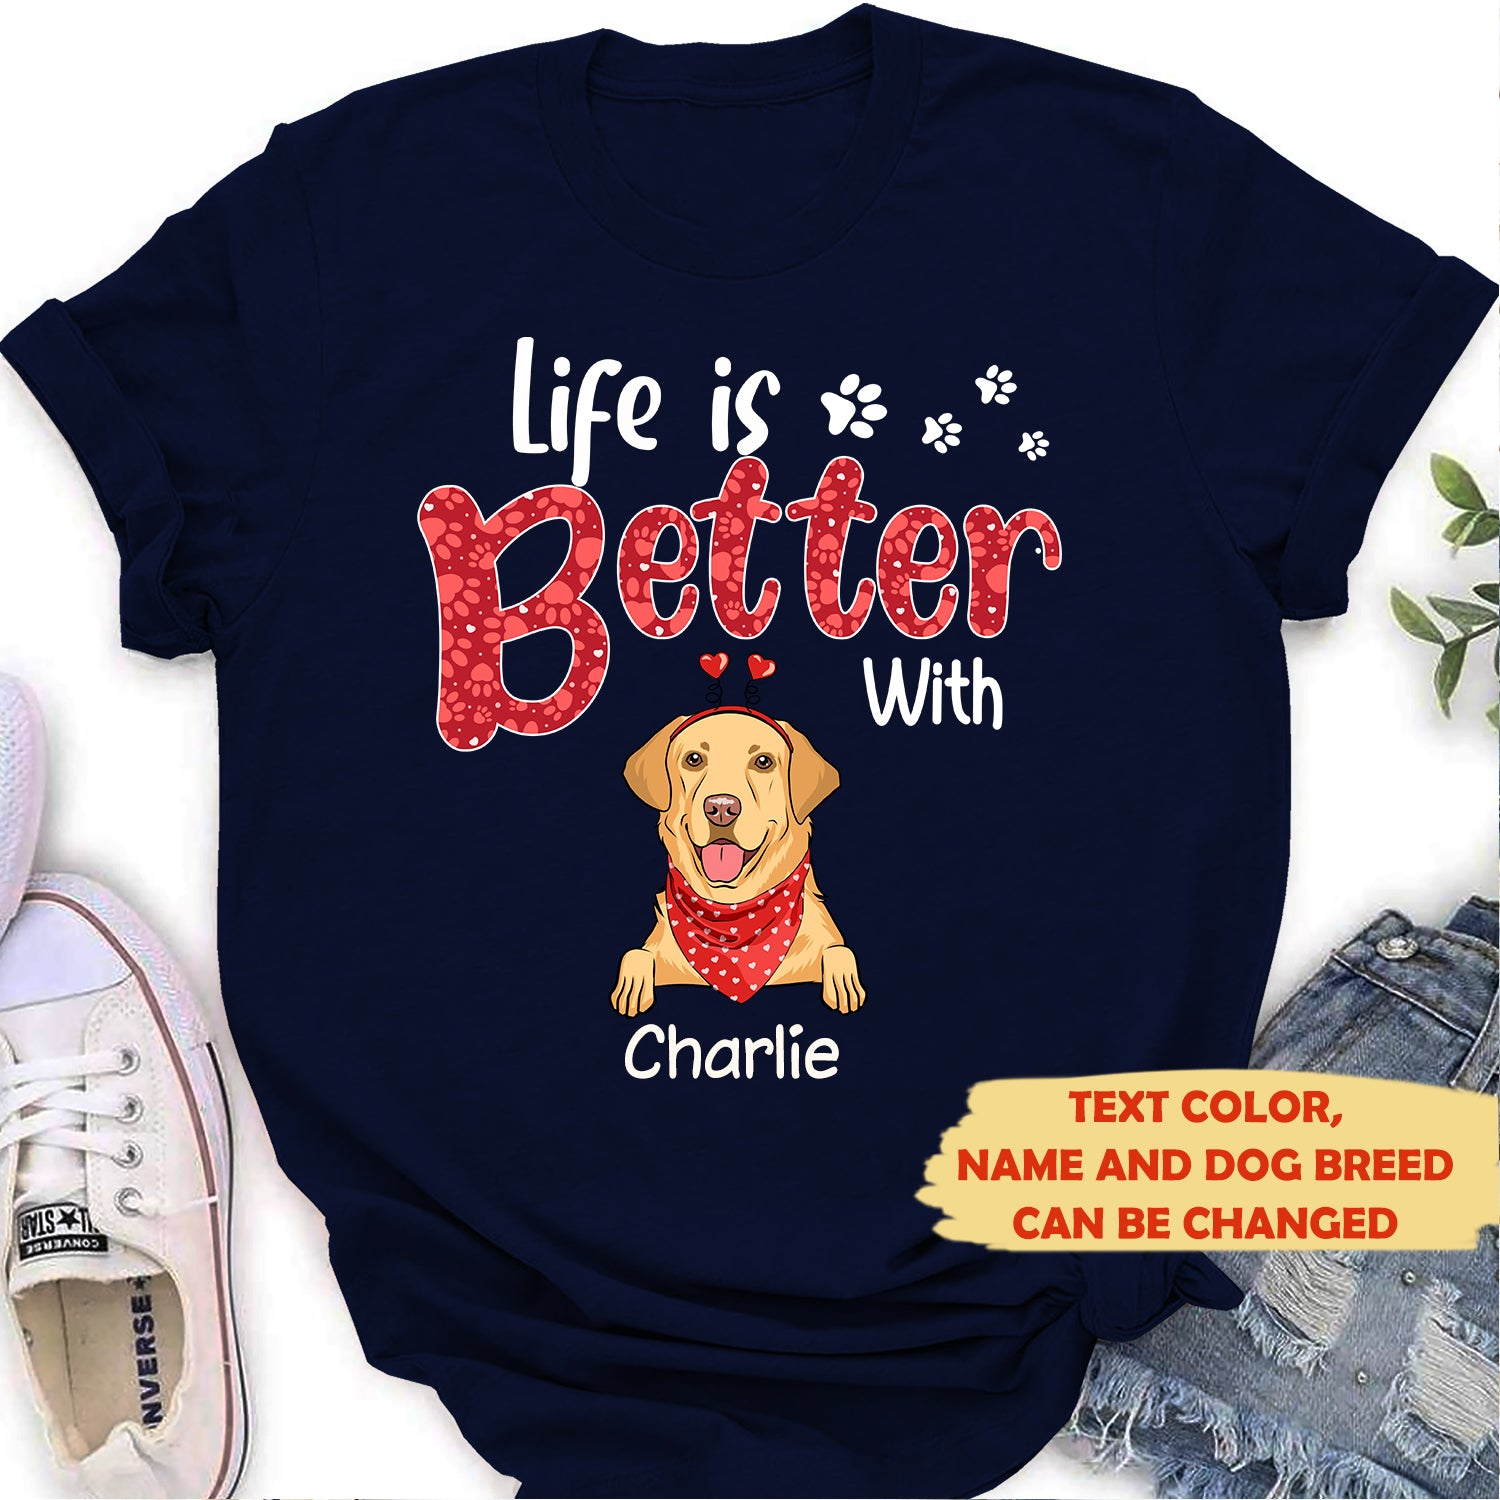 Life is better 2 - Personalized custom women's T-shirt